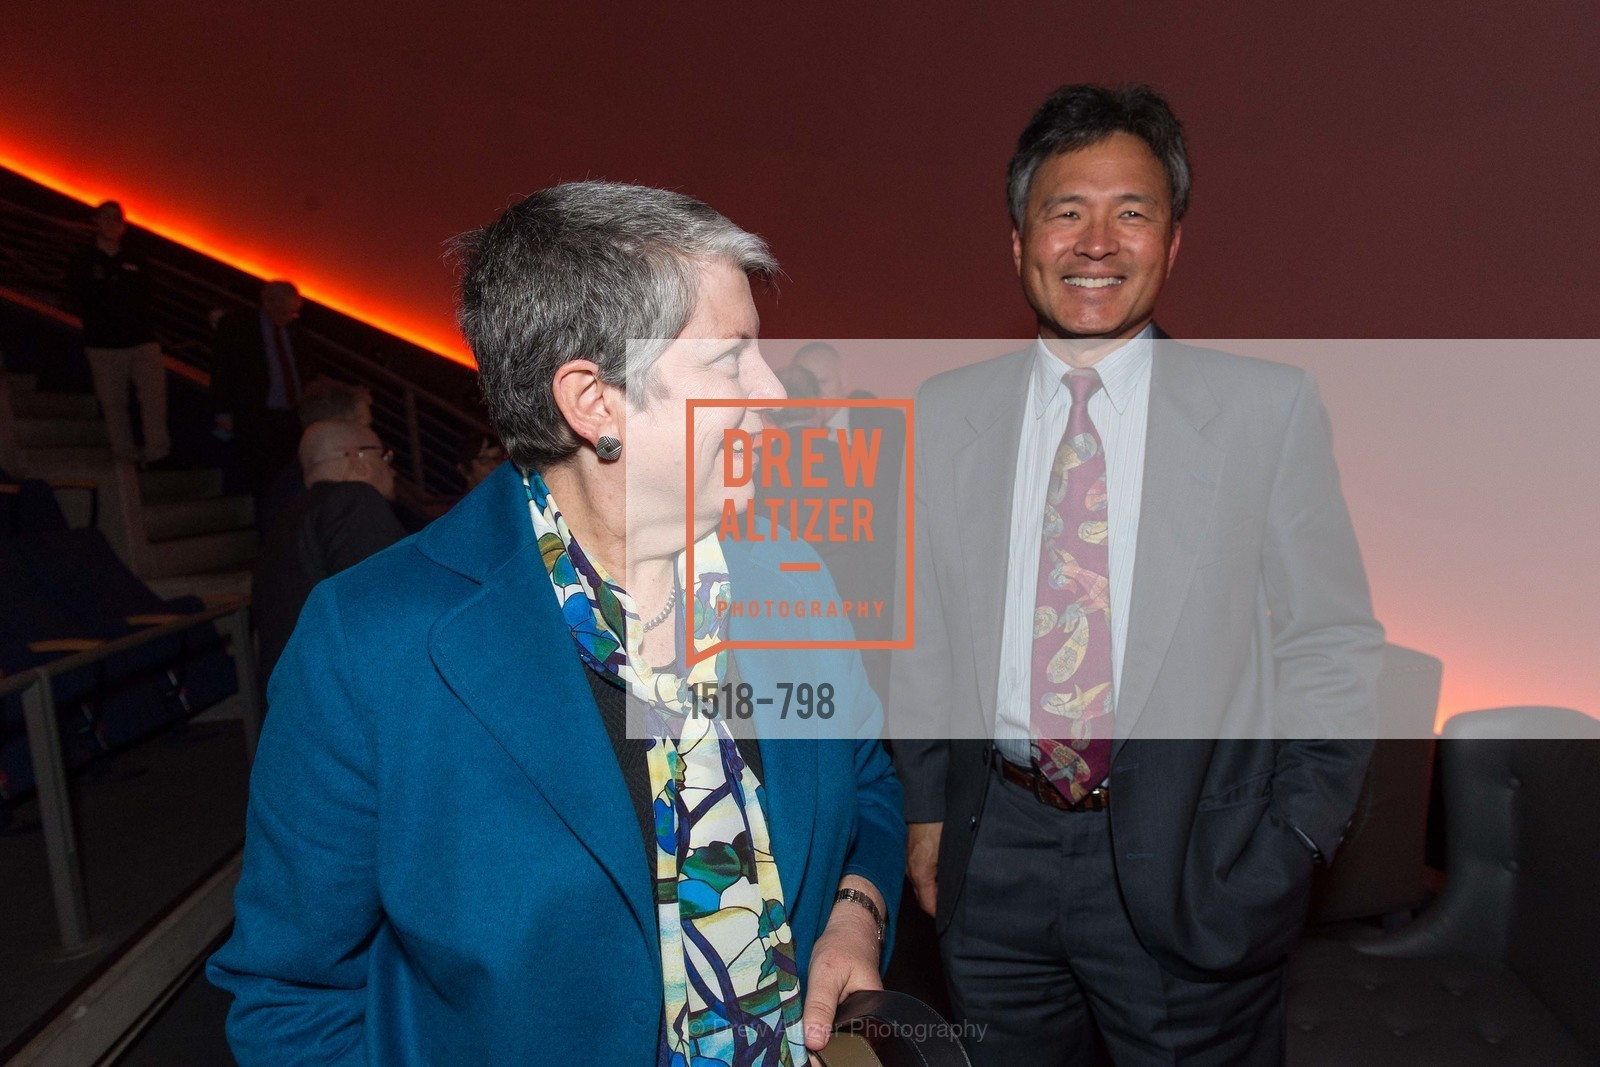 Janet Napolitano, Milton Chen, CALIFORNIA ACADEMY OF SCIENCES - Big Bang Gala 2015, US, April 23rd, 2015,Drew Altizer, Drew Altizer Photography, full-service agency, private events, San Francisco photographer, photographer california